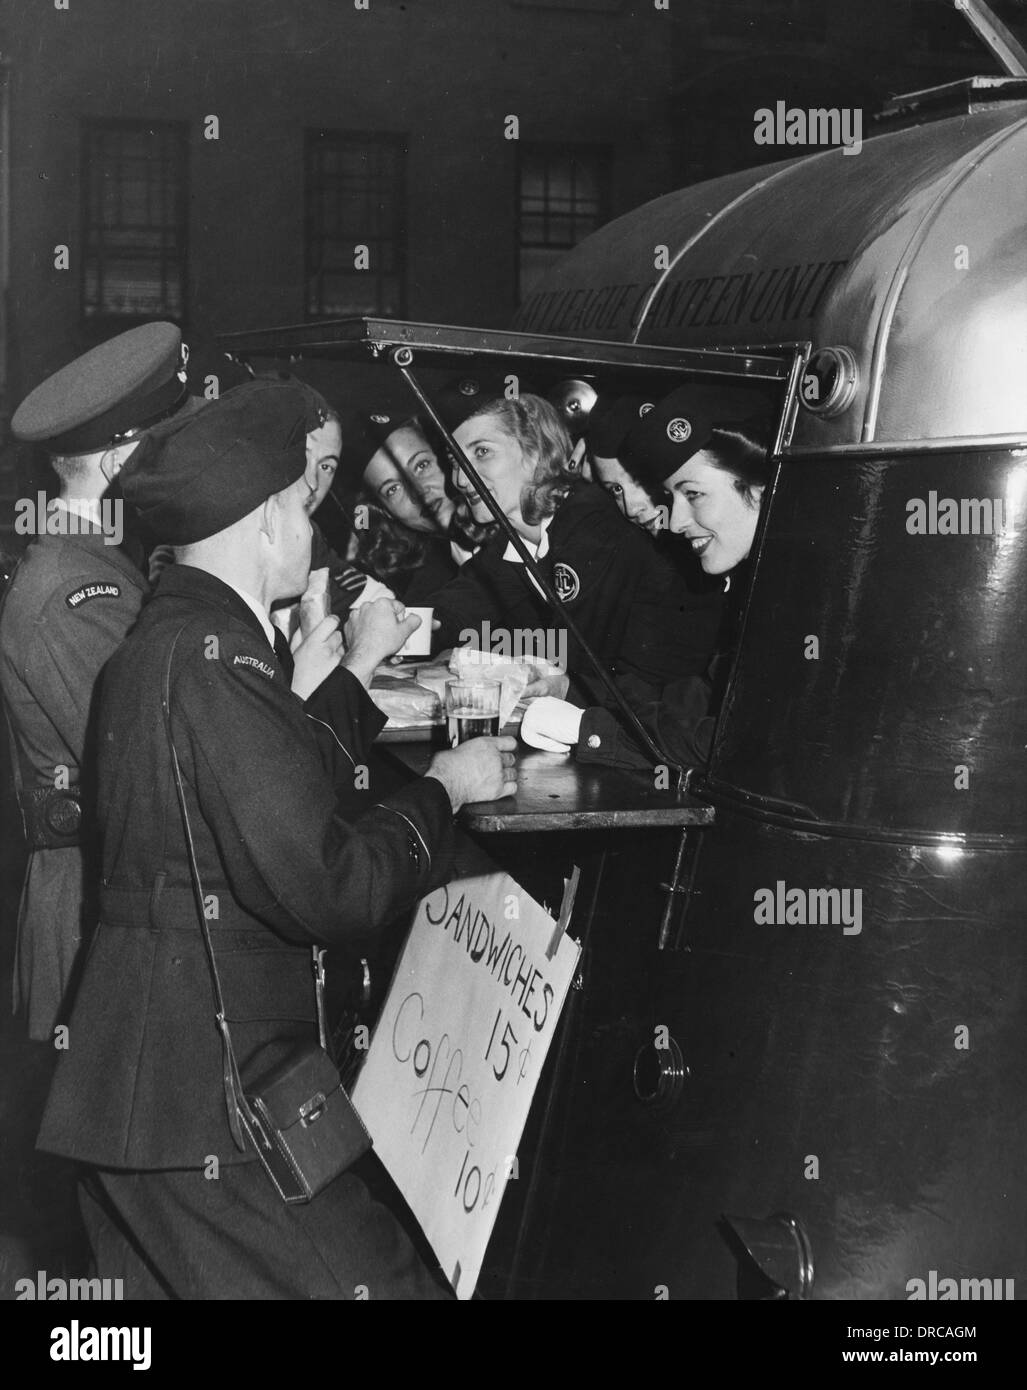 Navy League Canteen Unit WWII - Stock Image